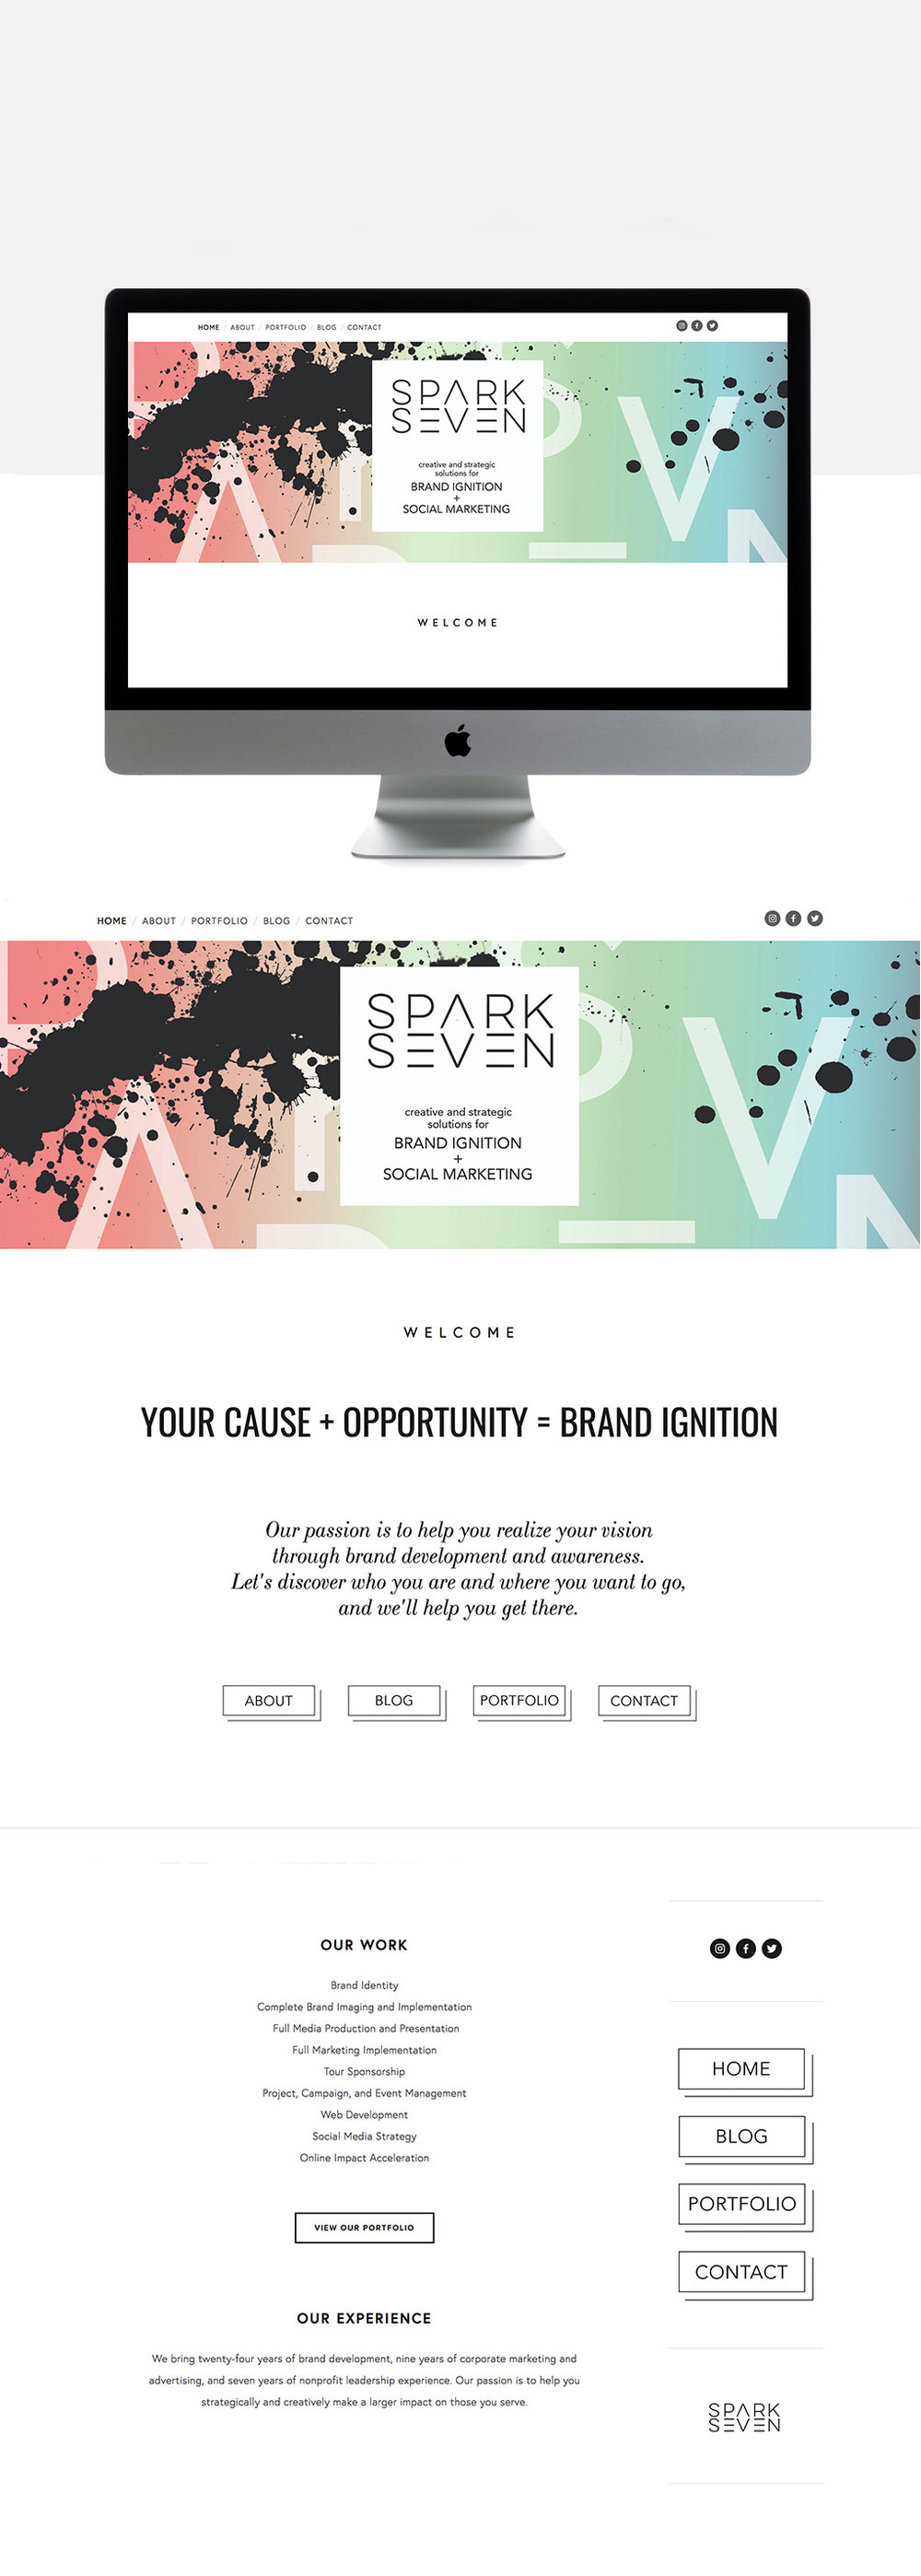 spark seven website board.jpg